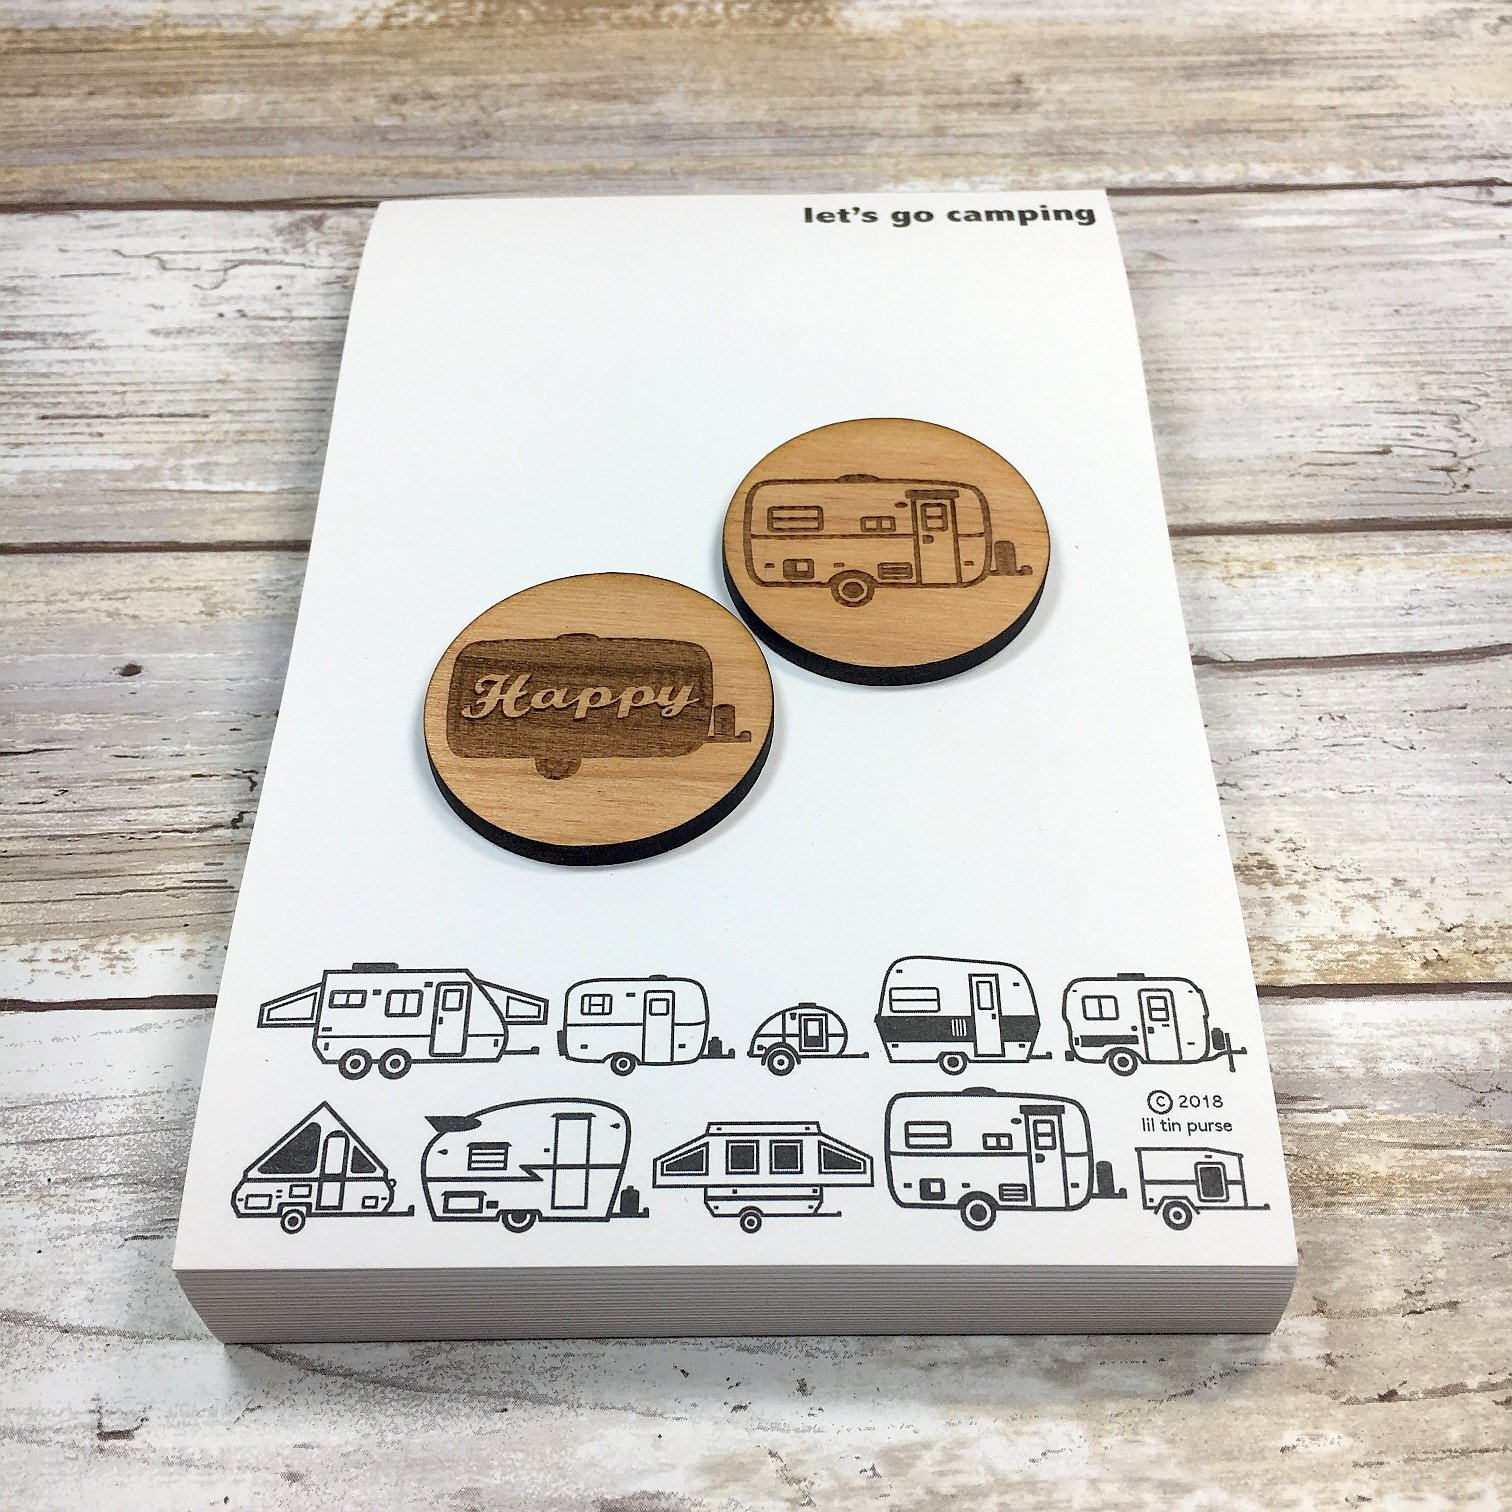 Large Egg Camper Magnets with let's go camping Travel Trailer Notepad